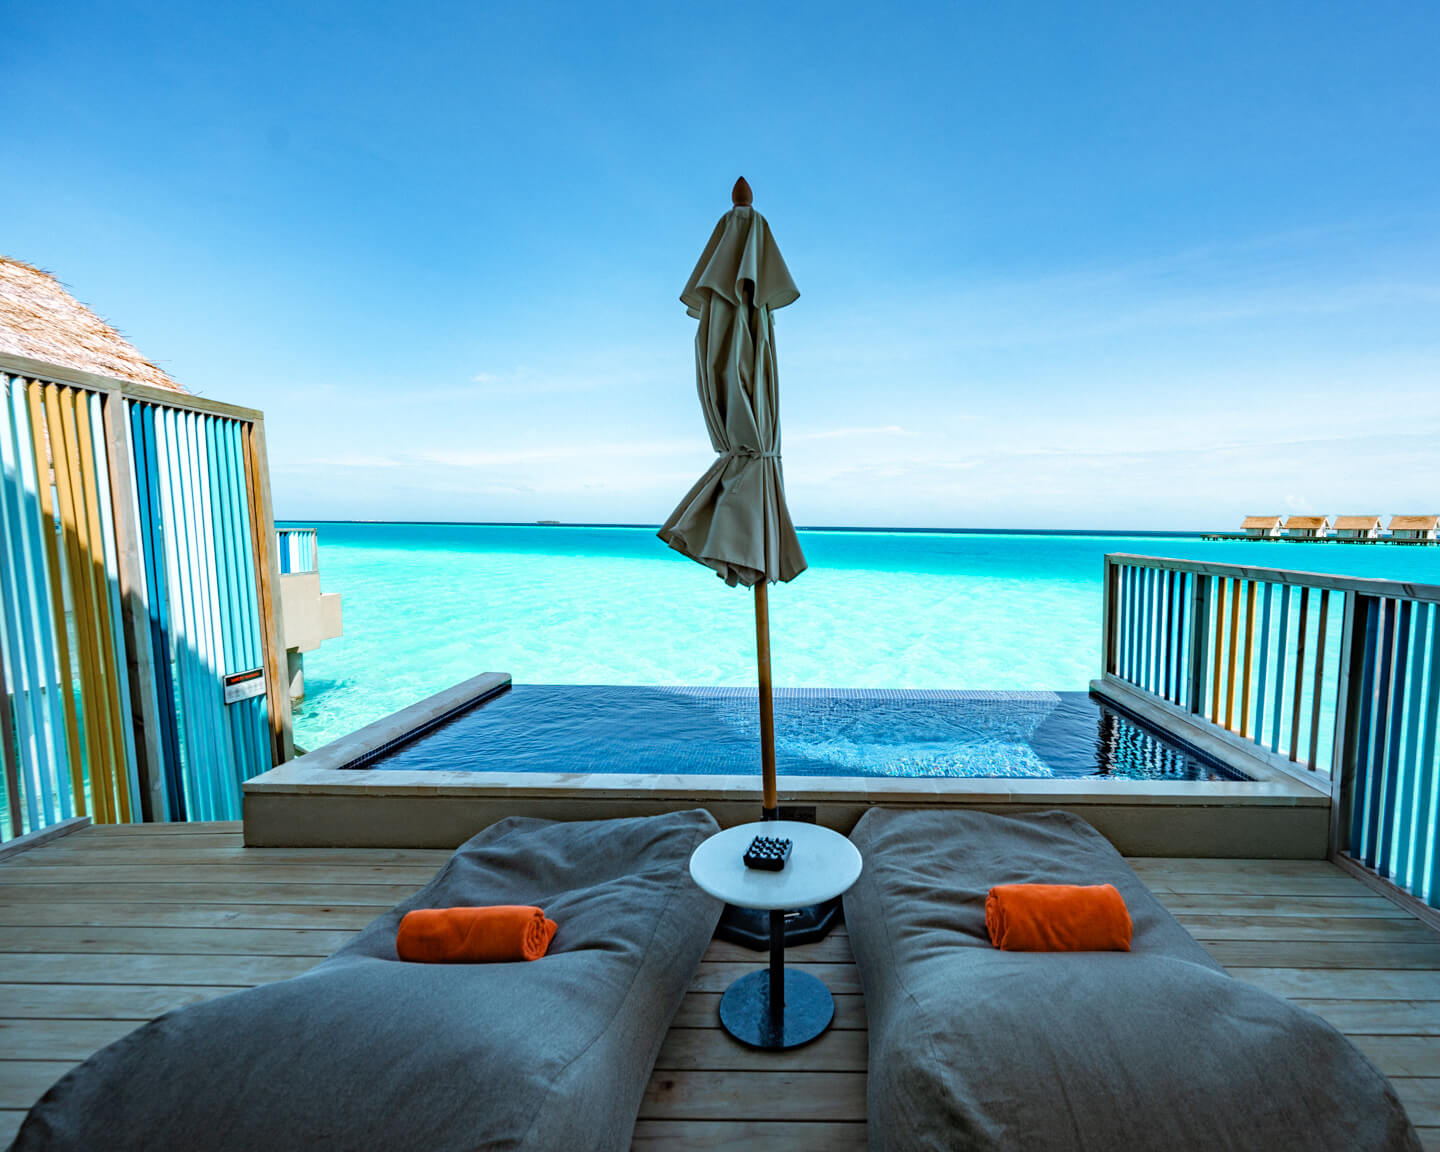 terrace with sunbeams and pool overlooking the blue lagoon at the hard rock hotel maldives